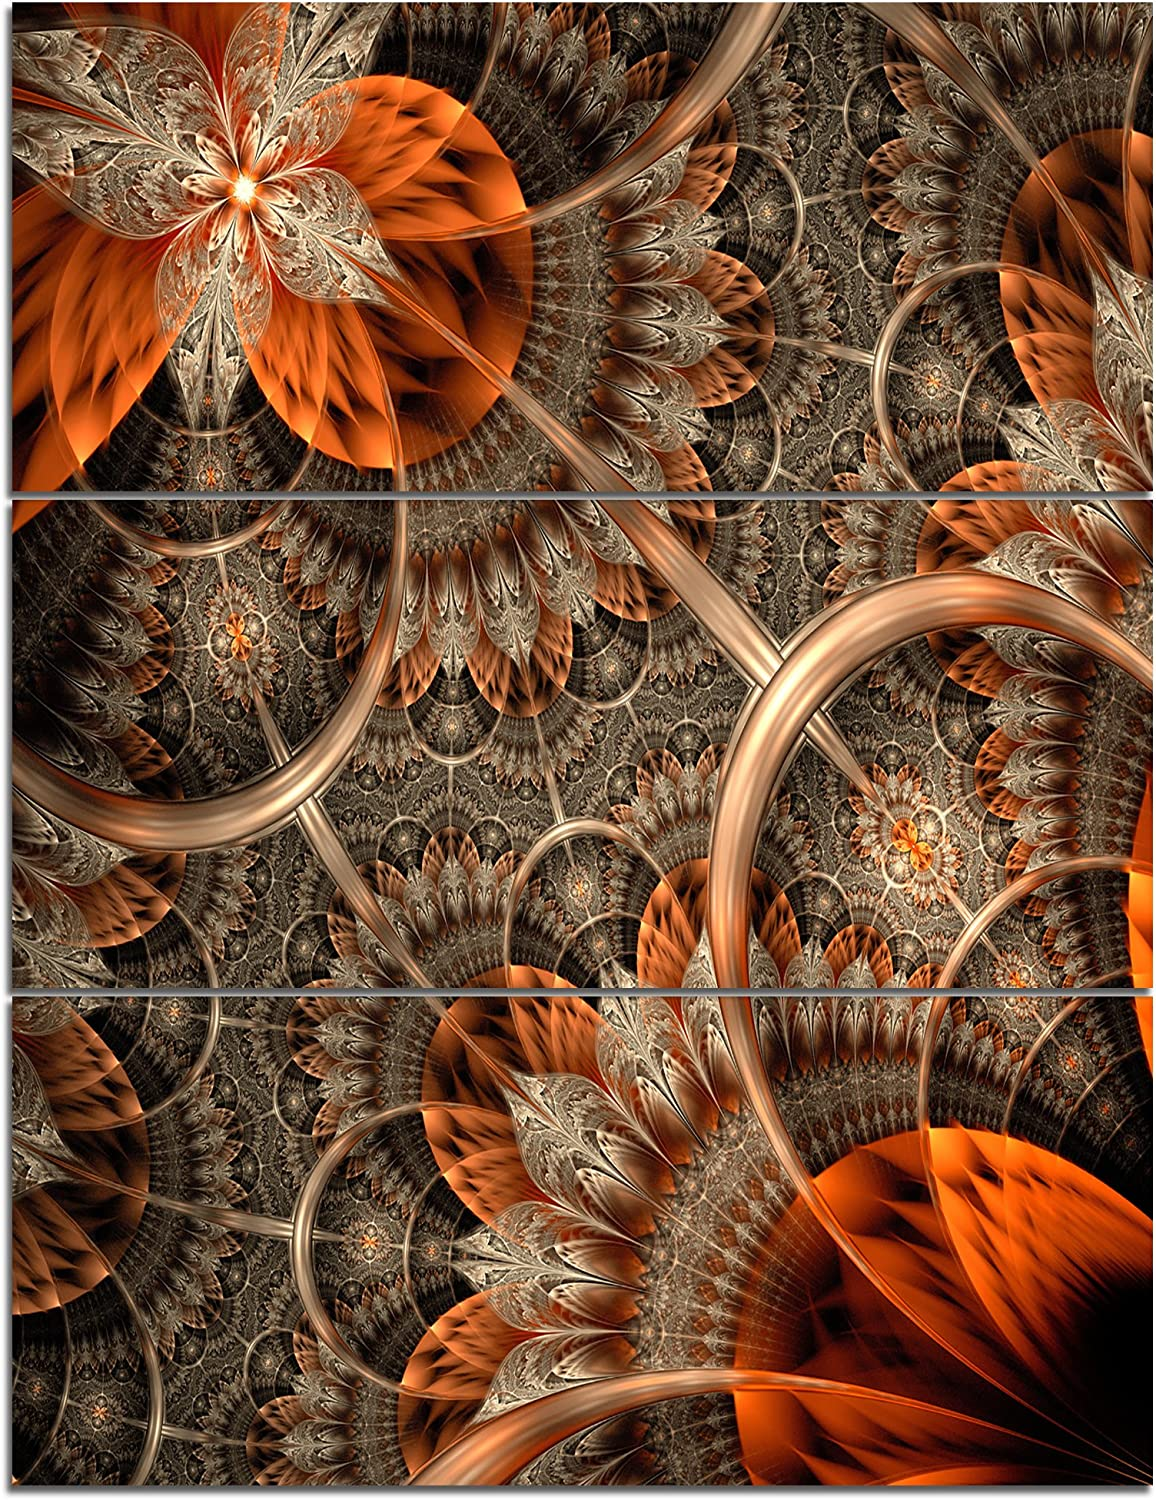 Amazon Com Designart Orange Brown Fractal Flower Large Floral Canvas Art Print 28x36 3 Piece 28 H X 36 W X 1 D 3p Home Kitchen